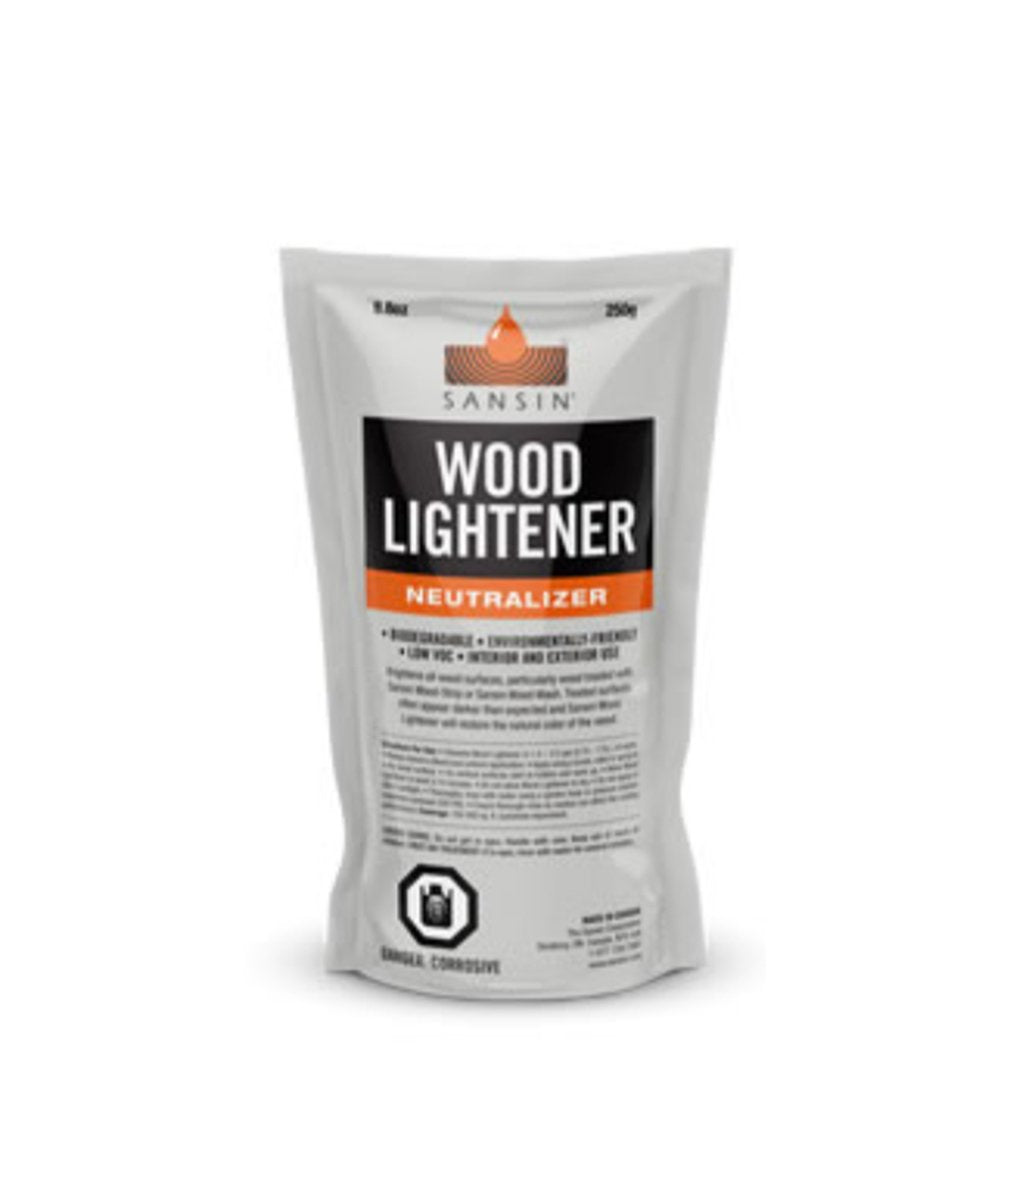 Sansin Wood Lightener, available at Catalina Paints in CA.